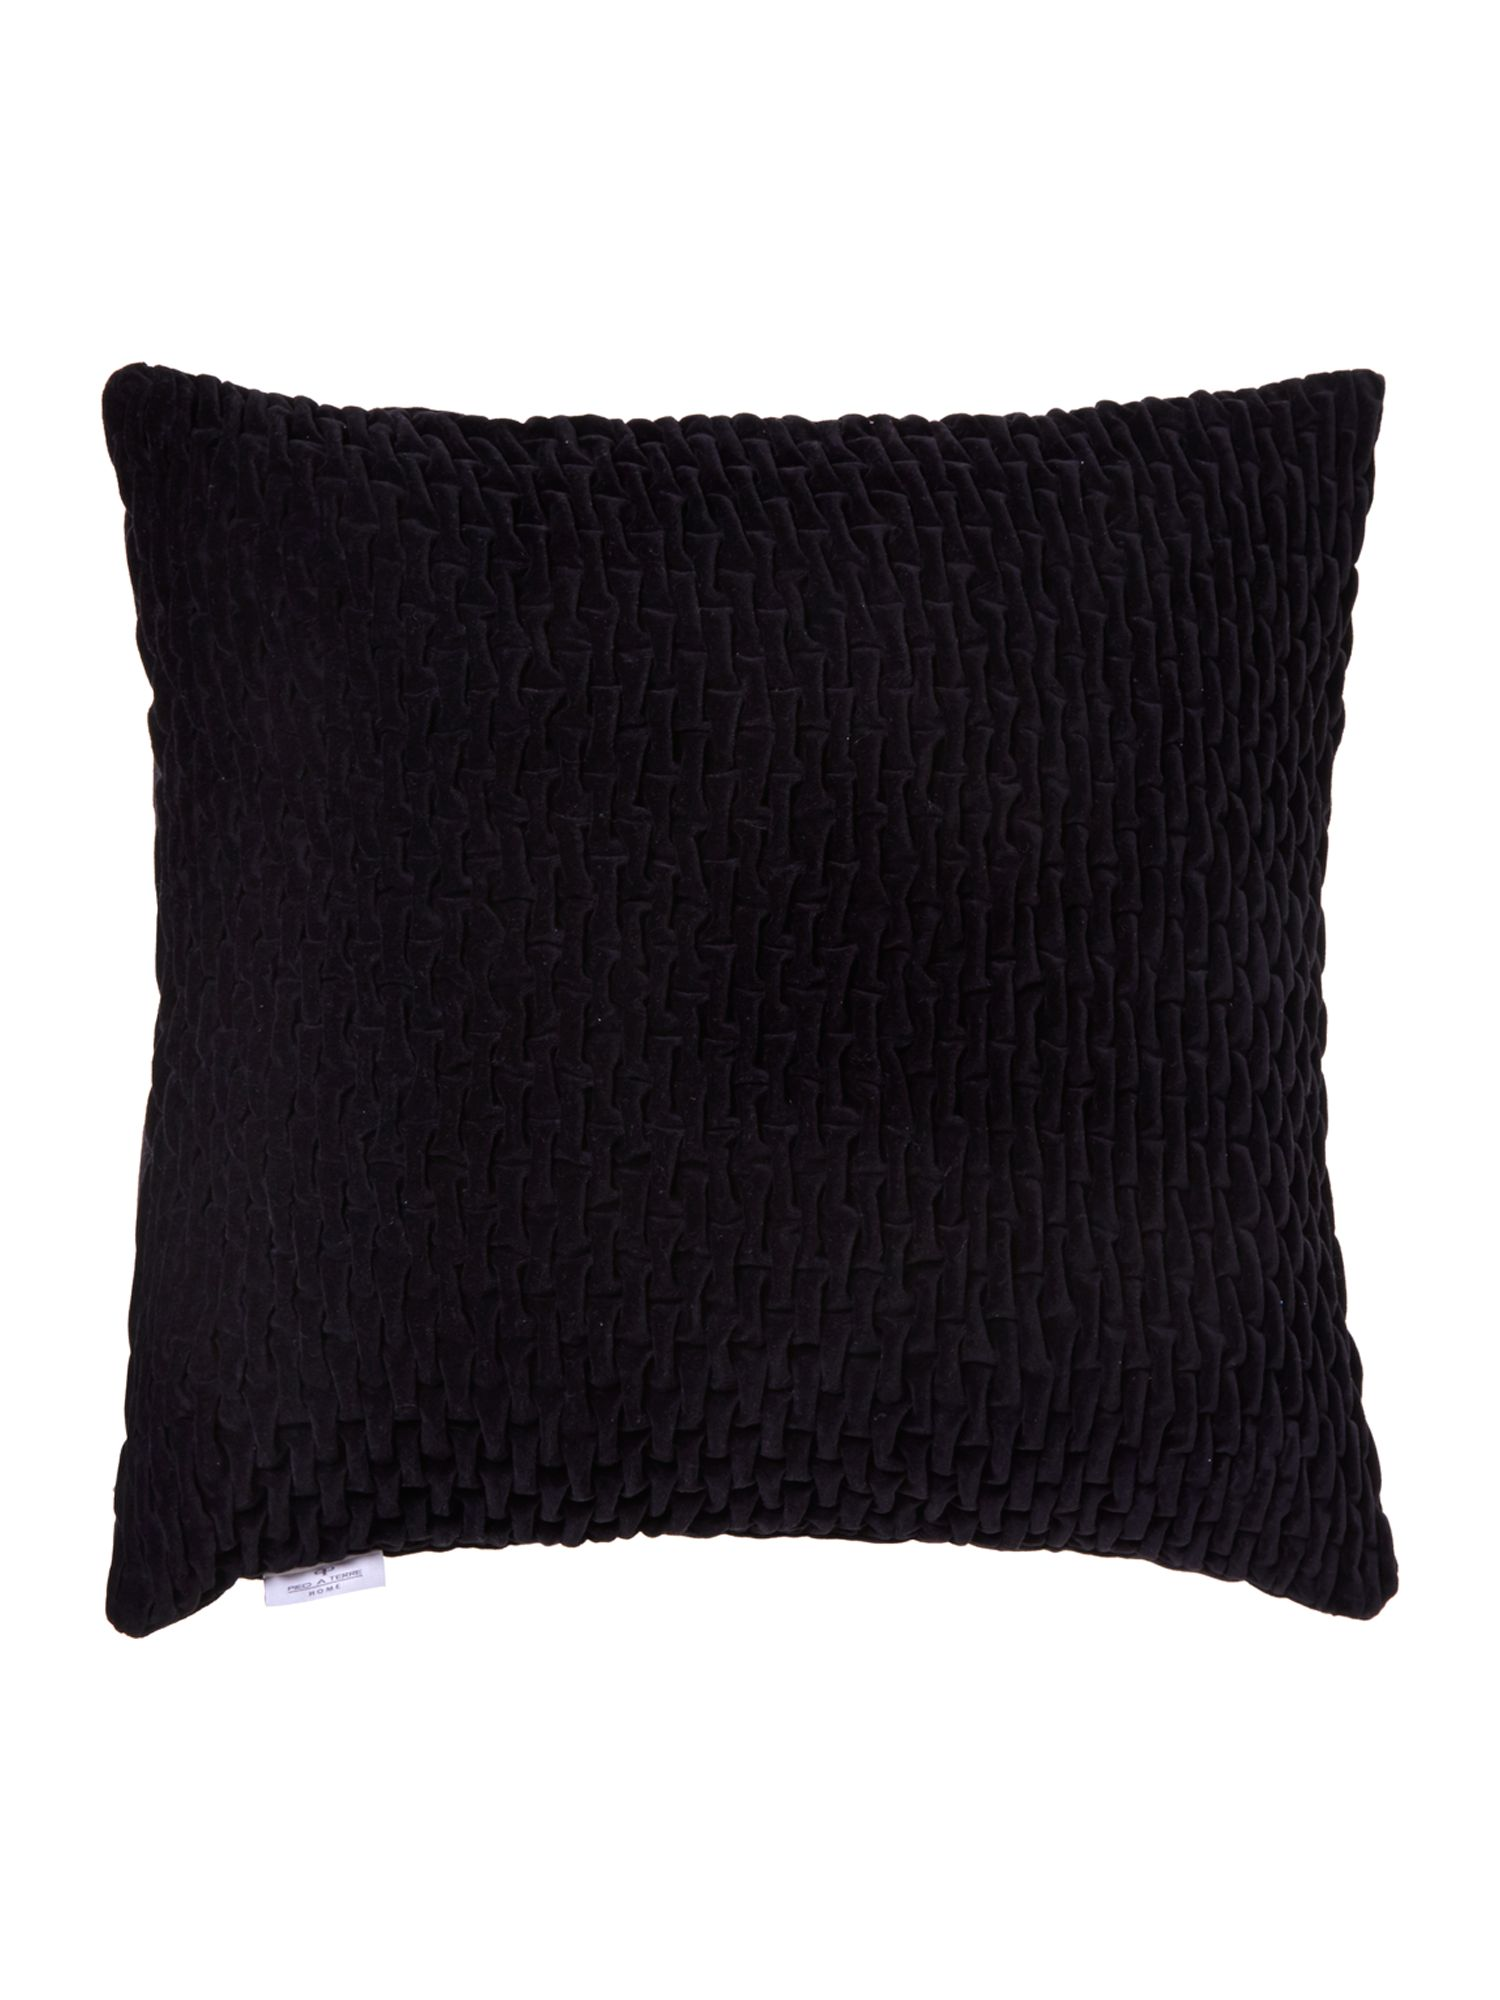 Black smocked velvet cushion